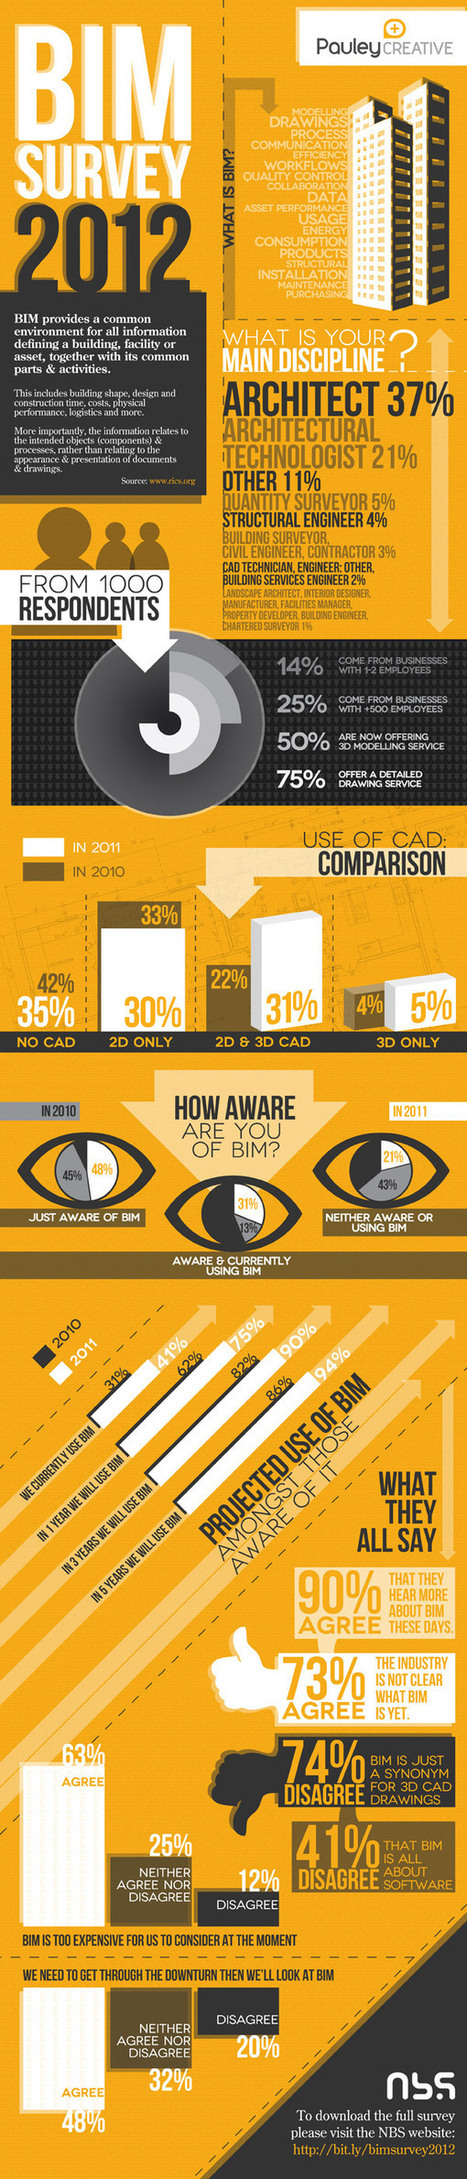 Infographic: Results of the national BIM survey 2012 | VDC and Lean World | Scoop.it